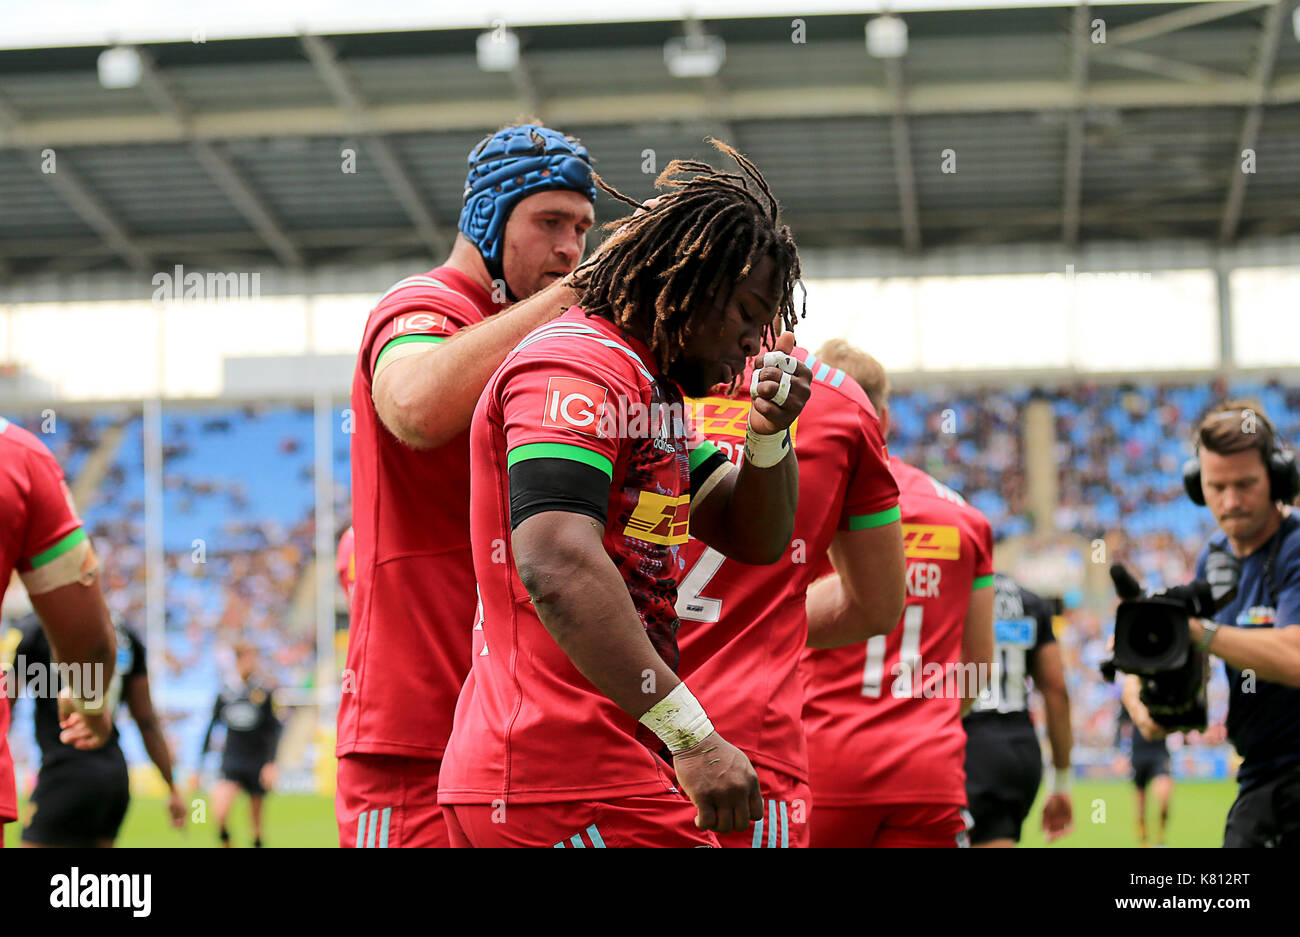 Harlequins Marland Yarde celebrates his TRY for wasps during the Aviva Premiership Rugby match between Wasps RFC v Harlequins F.C on Sunday 17th September 2017 at the Ricoh Arena, Coventry. Credit Leila Coker - Stock Image